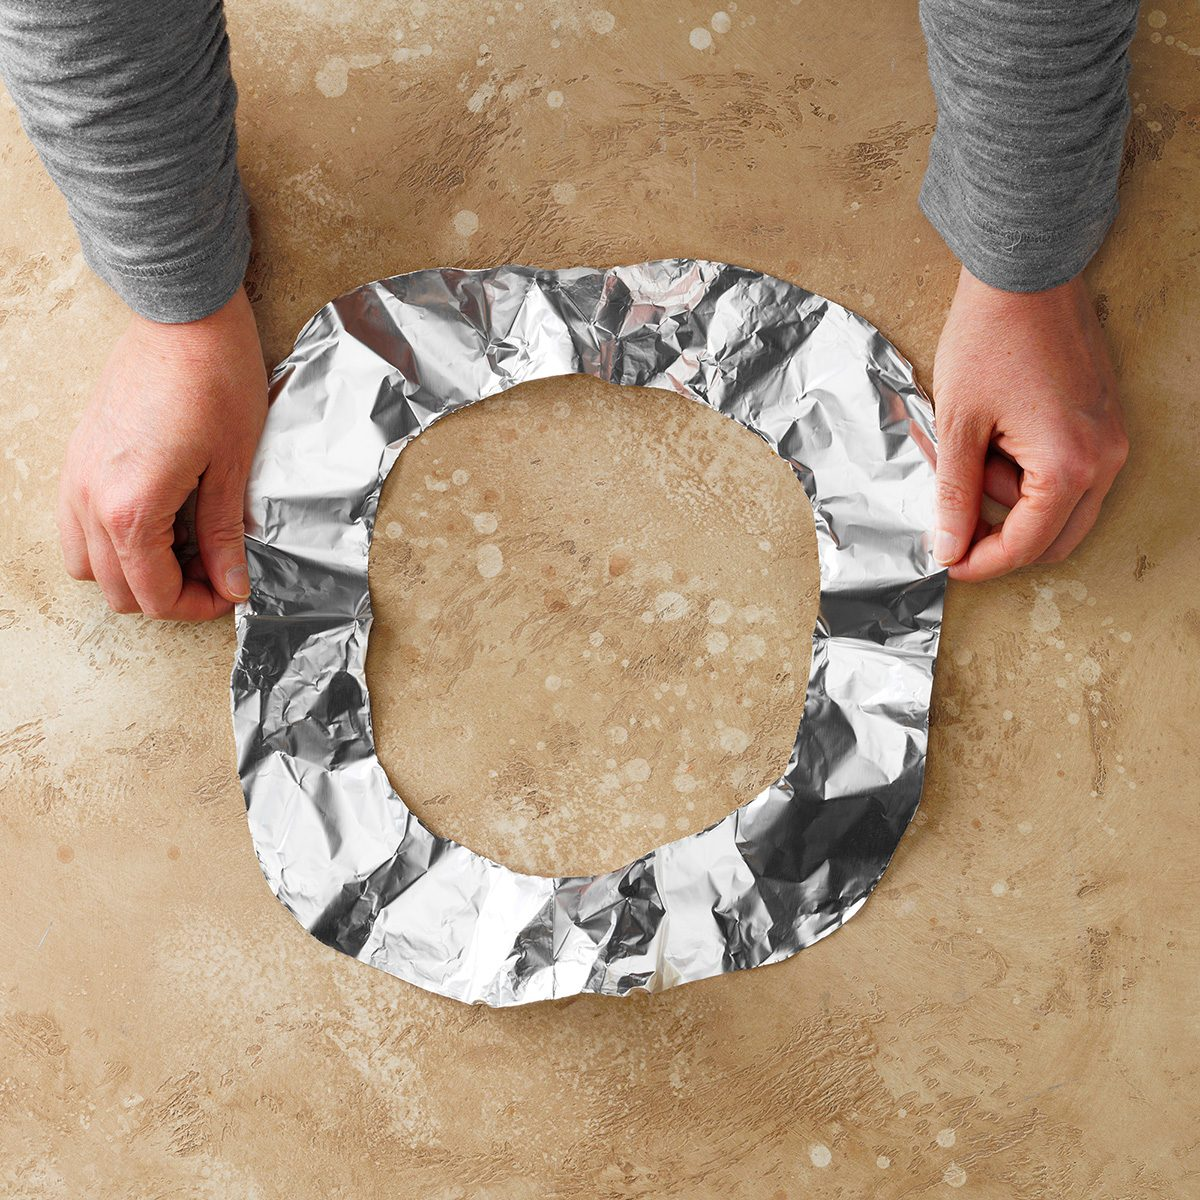 Foil-Covered Crust Trick; How To